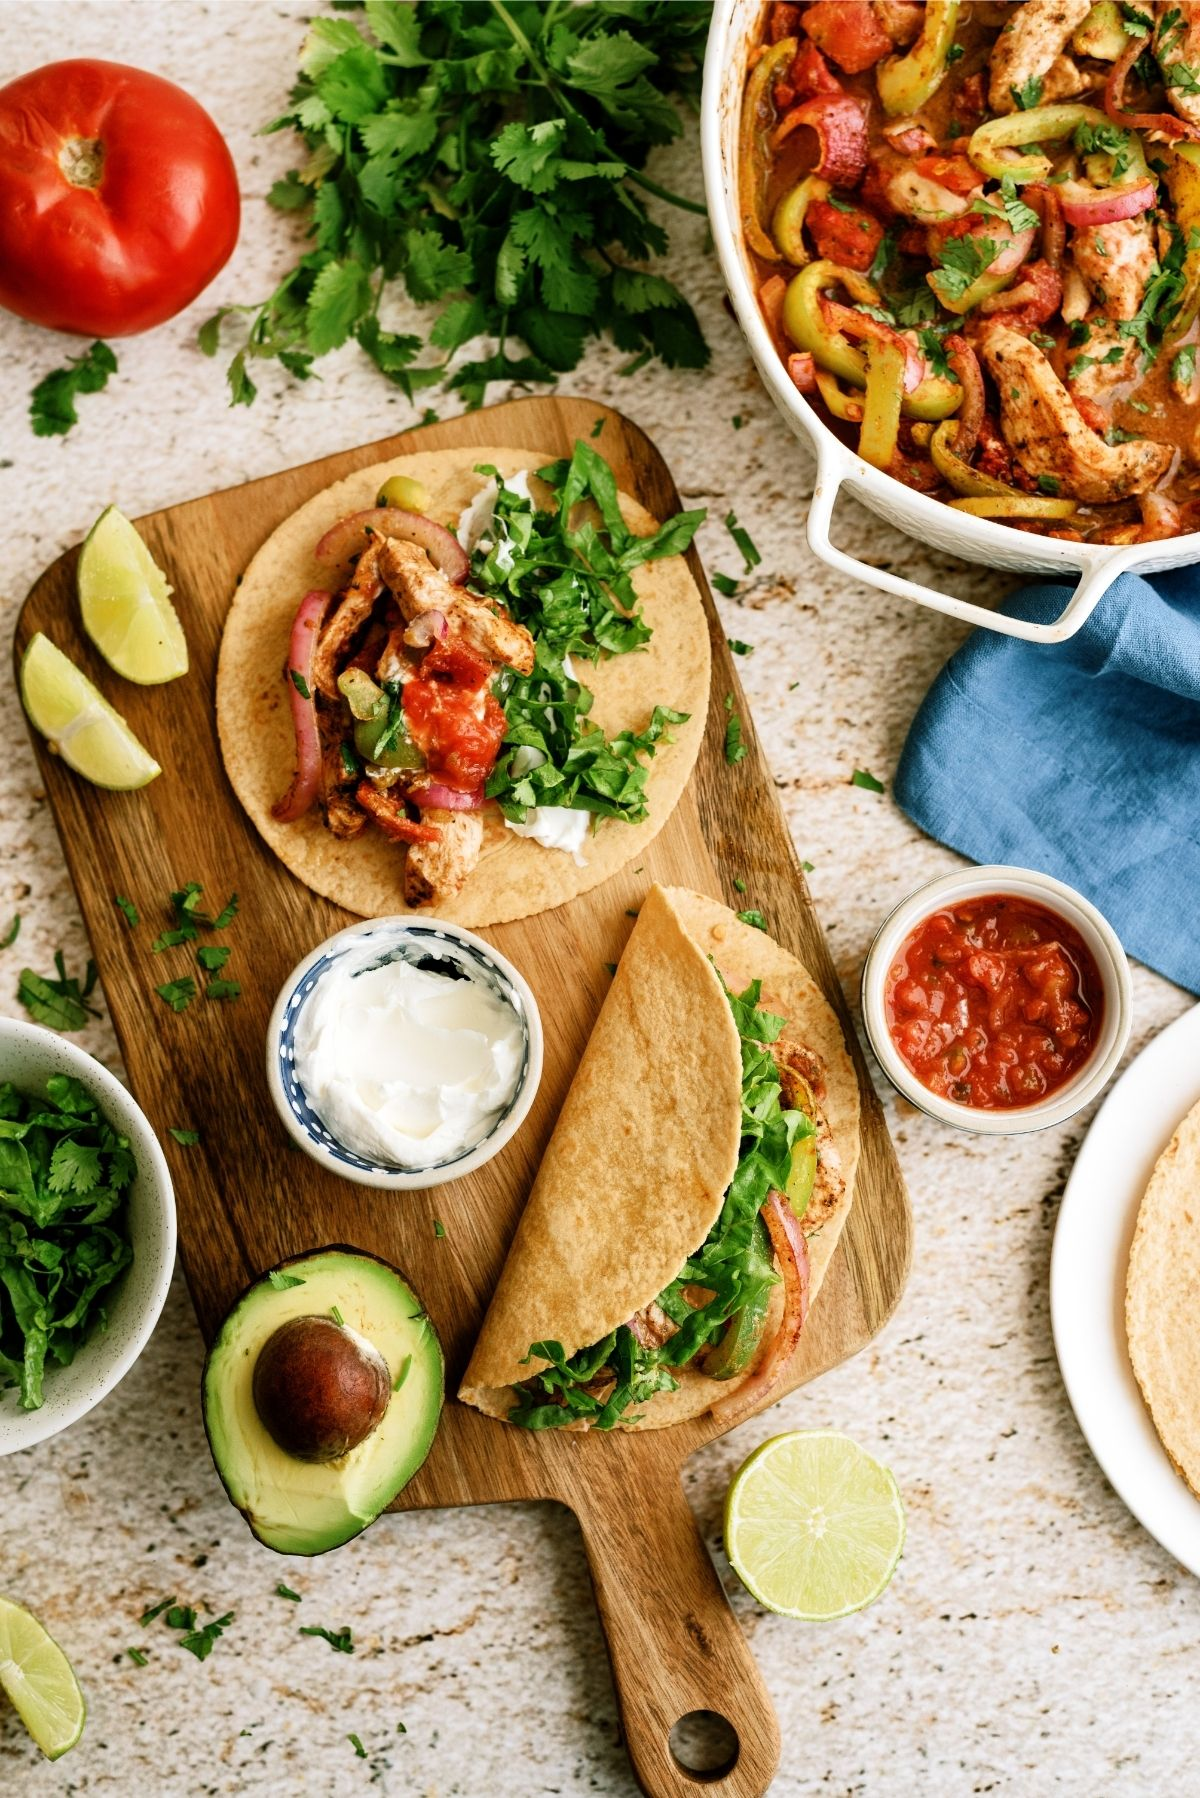 Baked Chicken Fajitas on a cutting board in tortillas surrounded by toppings